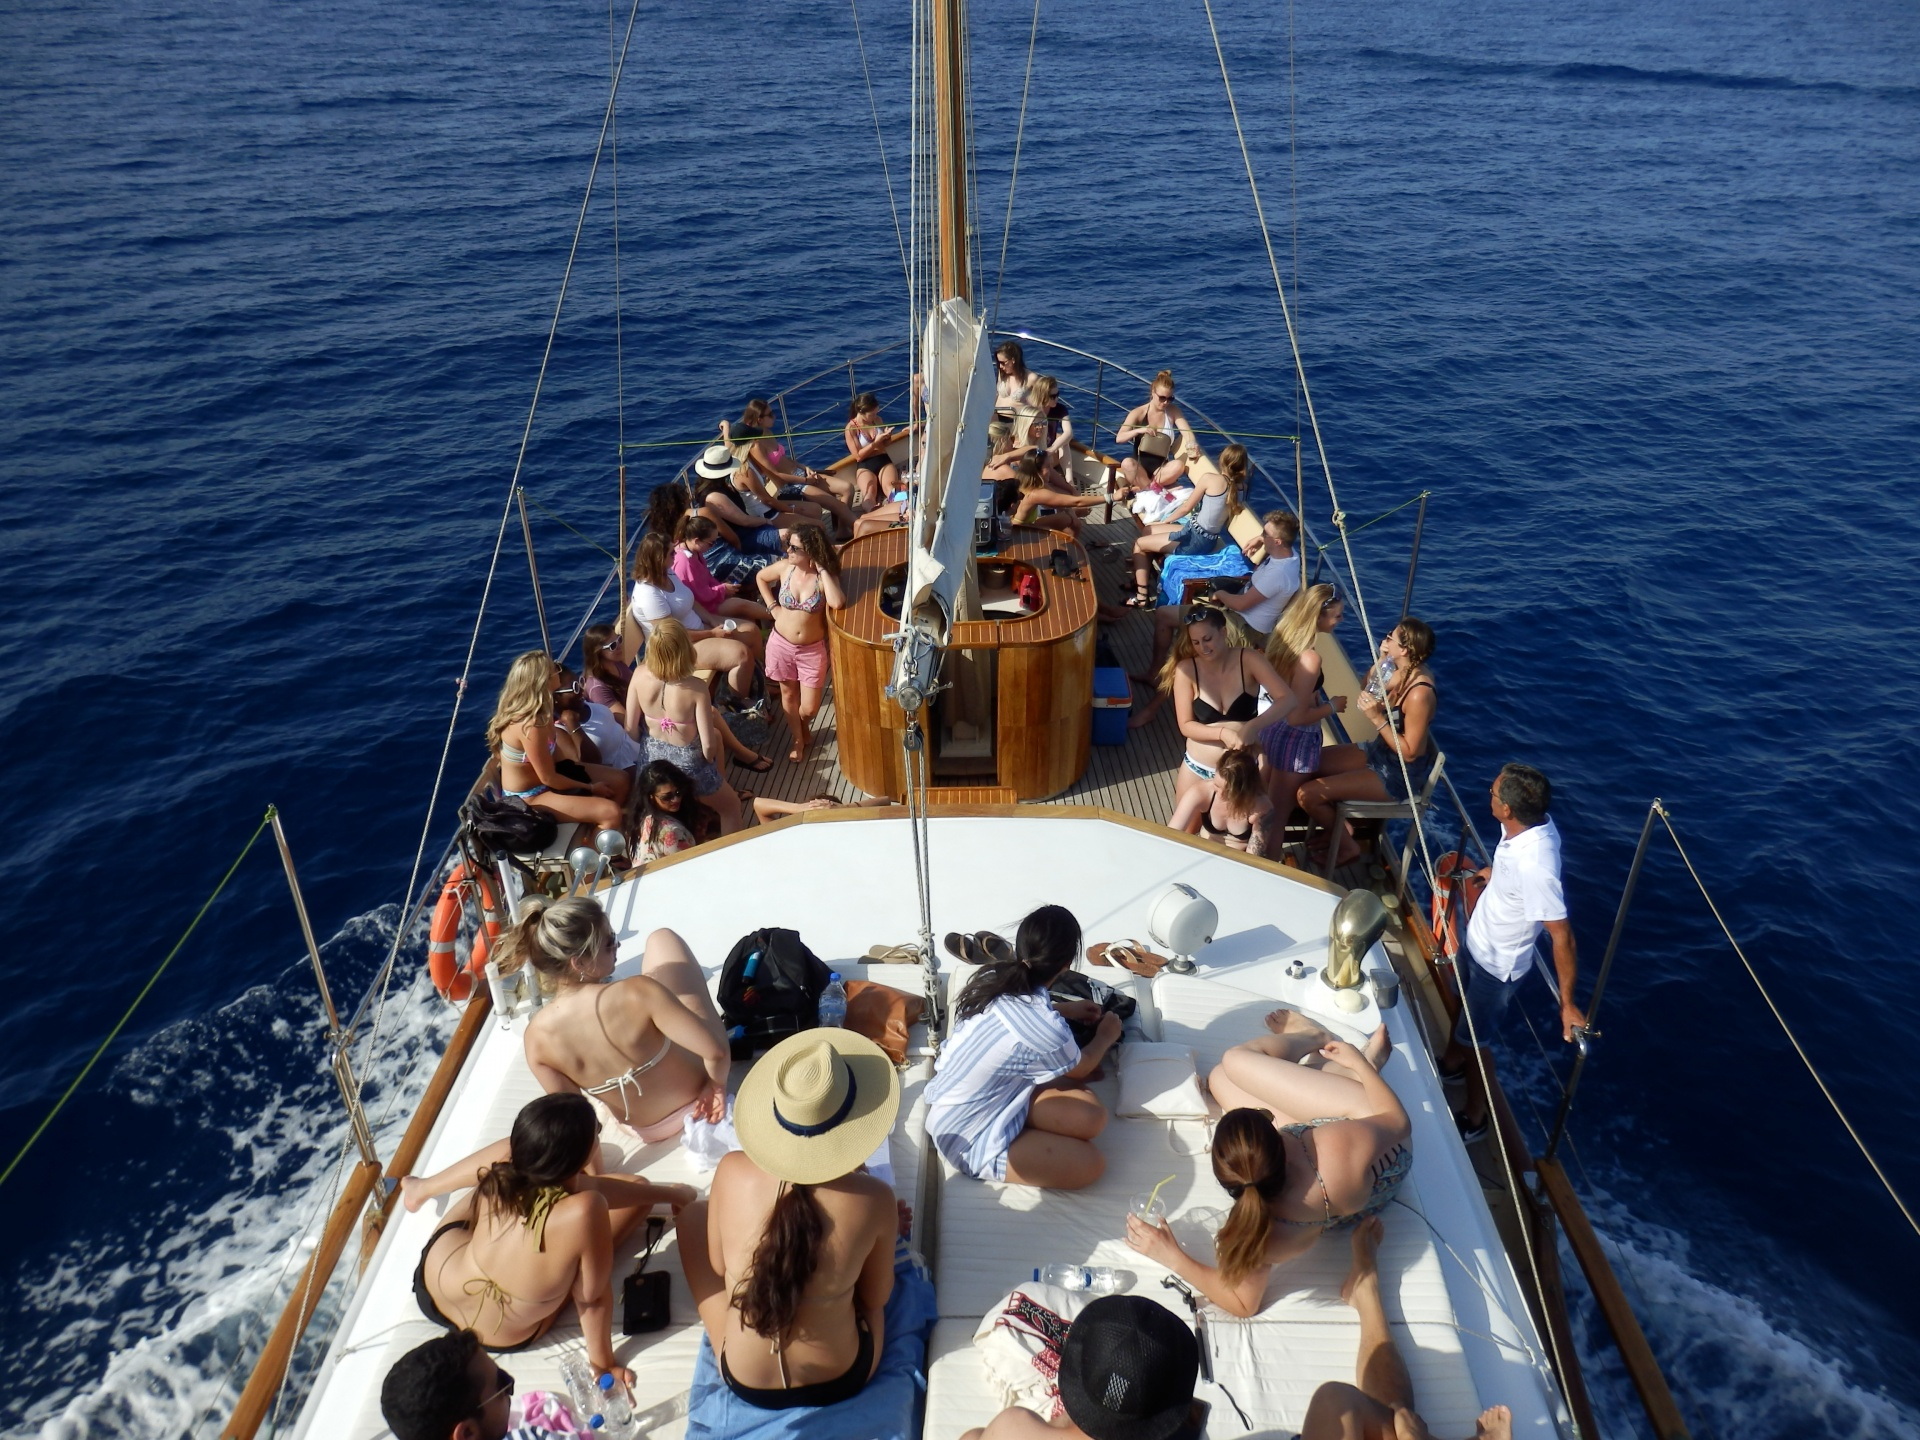 Athens boat party